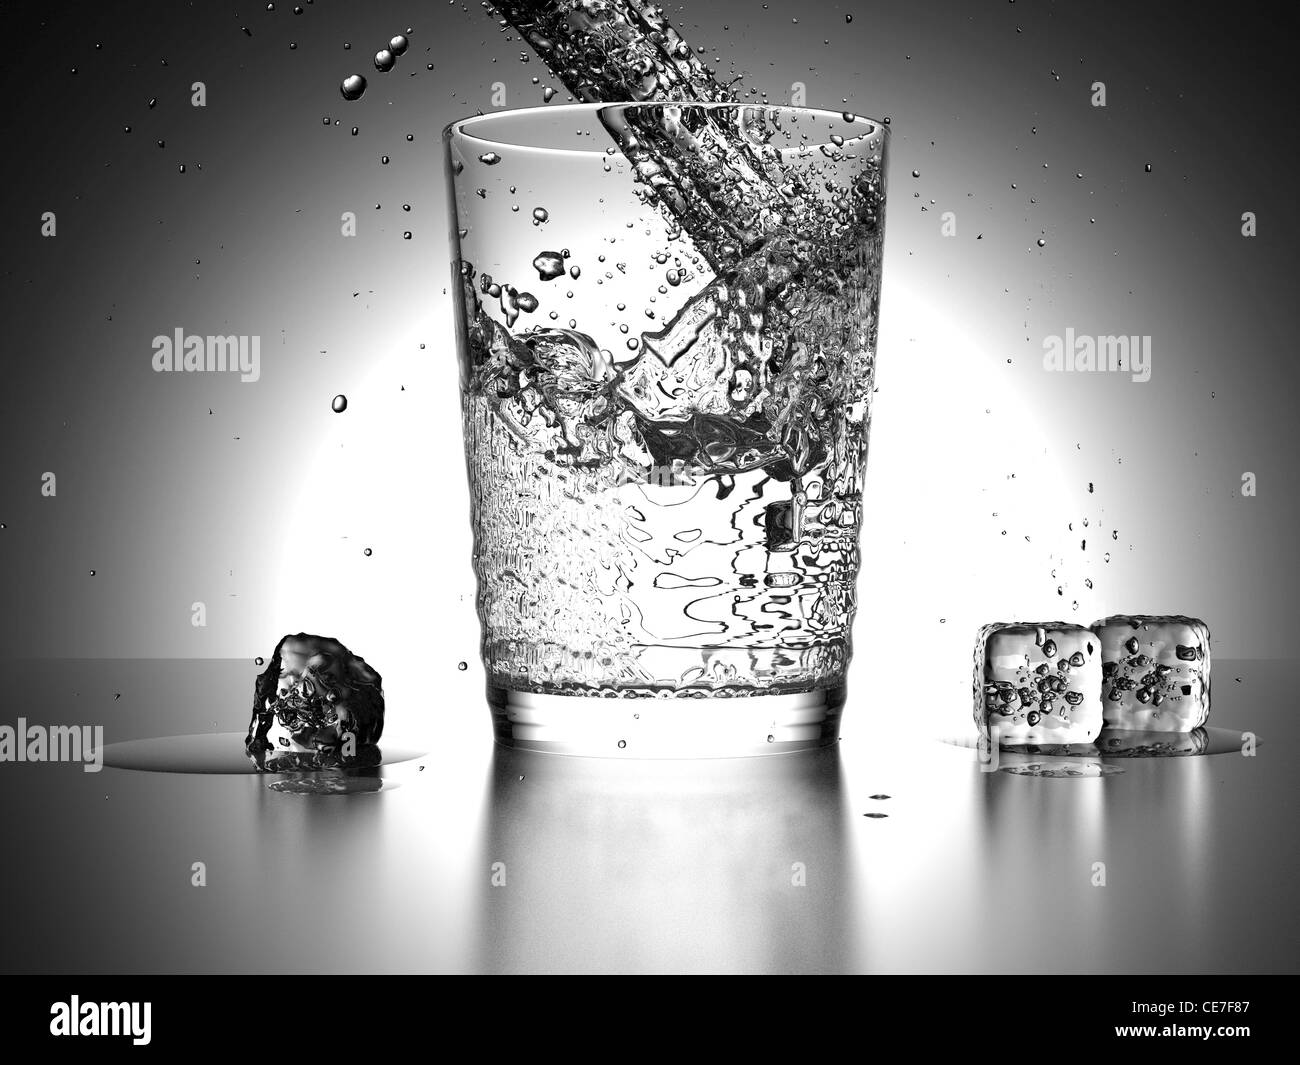 Water Splash into a glass with icecubes beside the glass - Stock Image